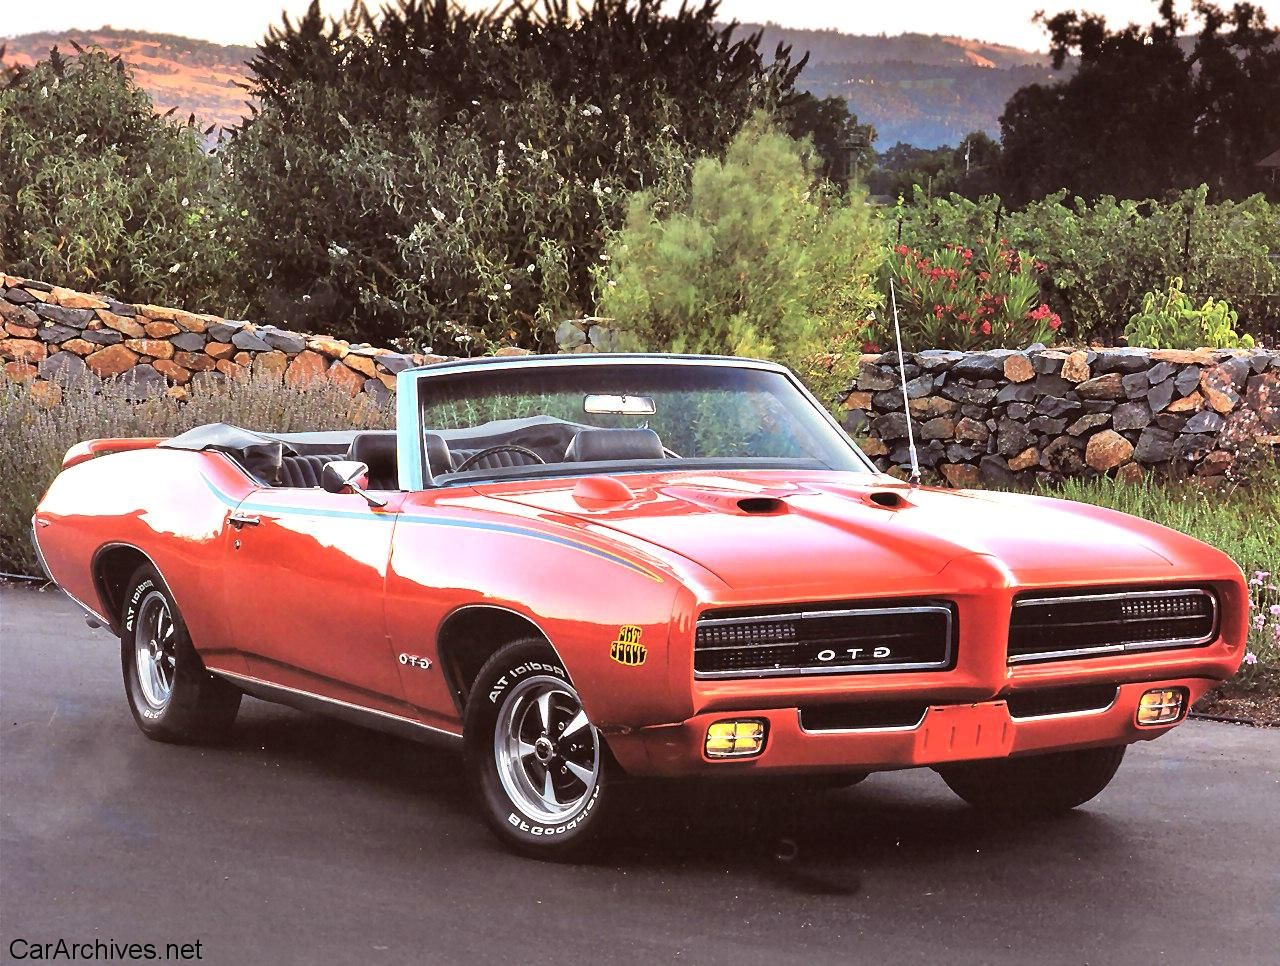 Of all the great muscle cars Detroit has churned out, the 1969 GTO ...